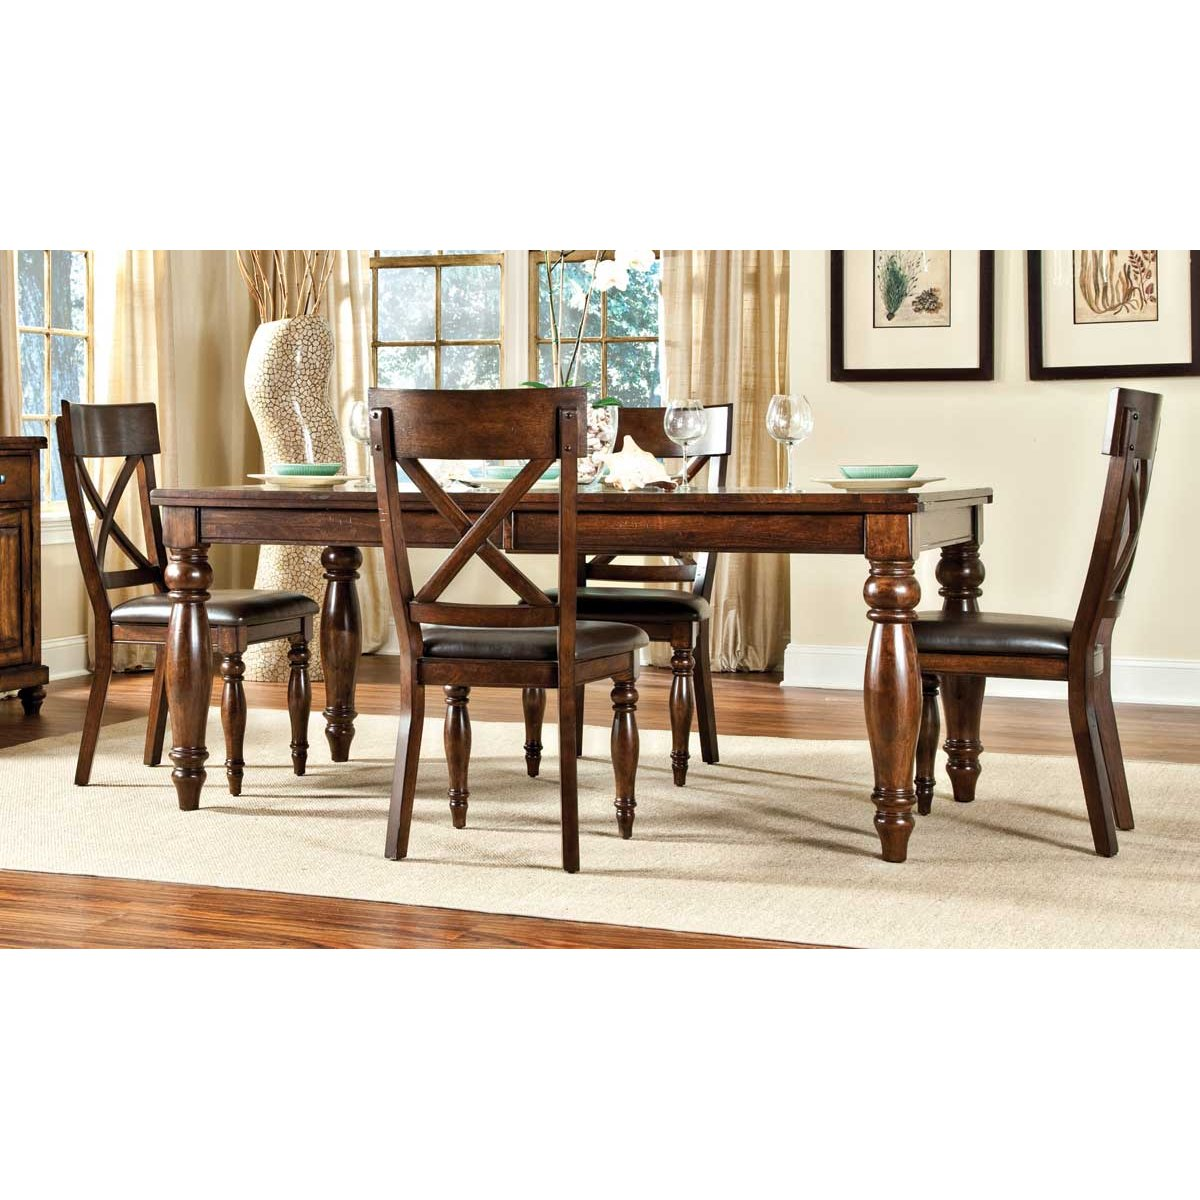 Raisin 5 Piece Dining Set   Kingston